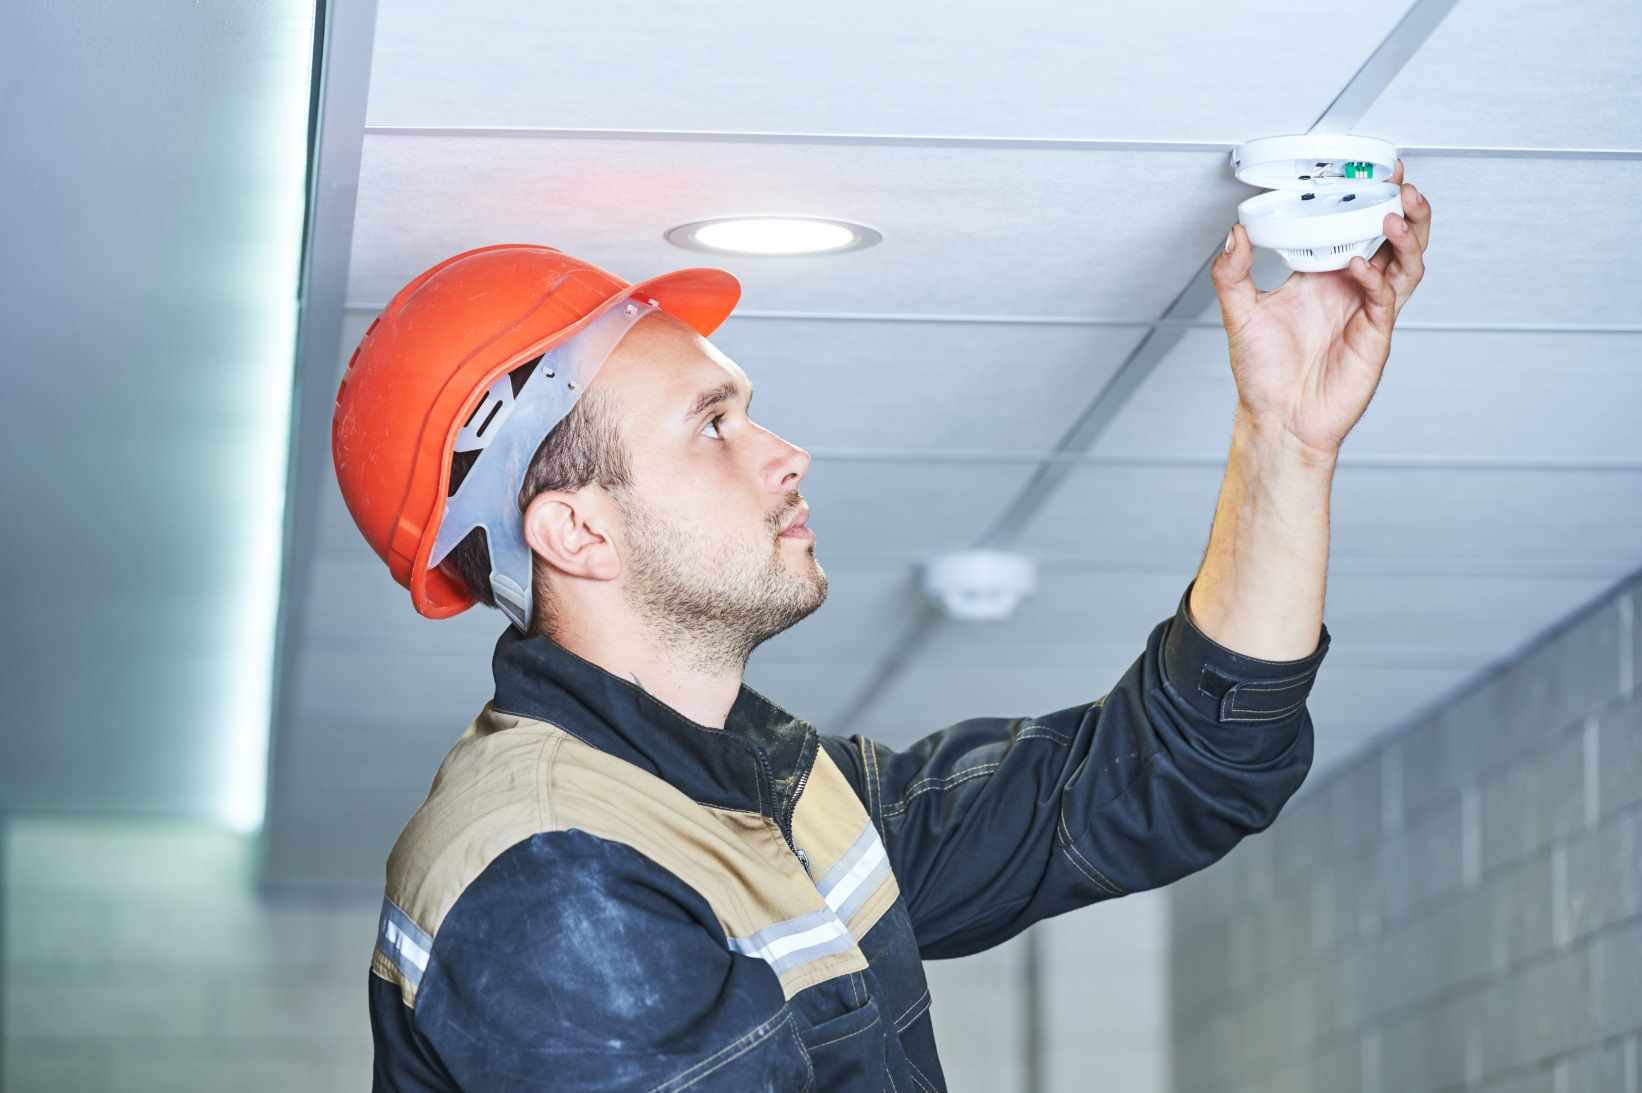 Who Can Install Fire Alarm Systems?